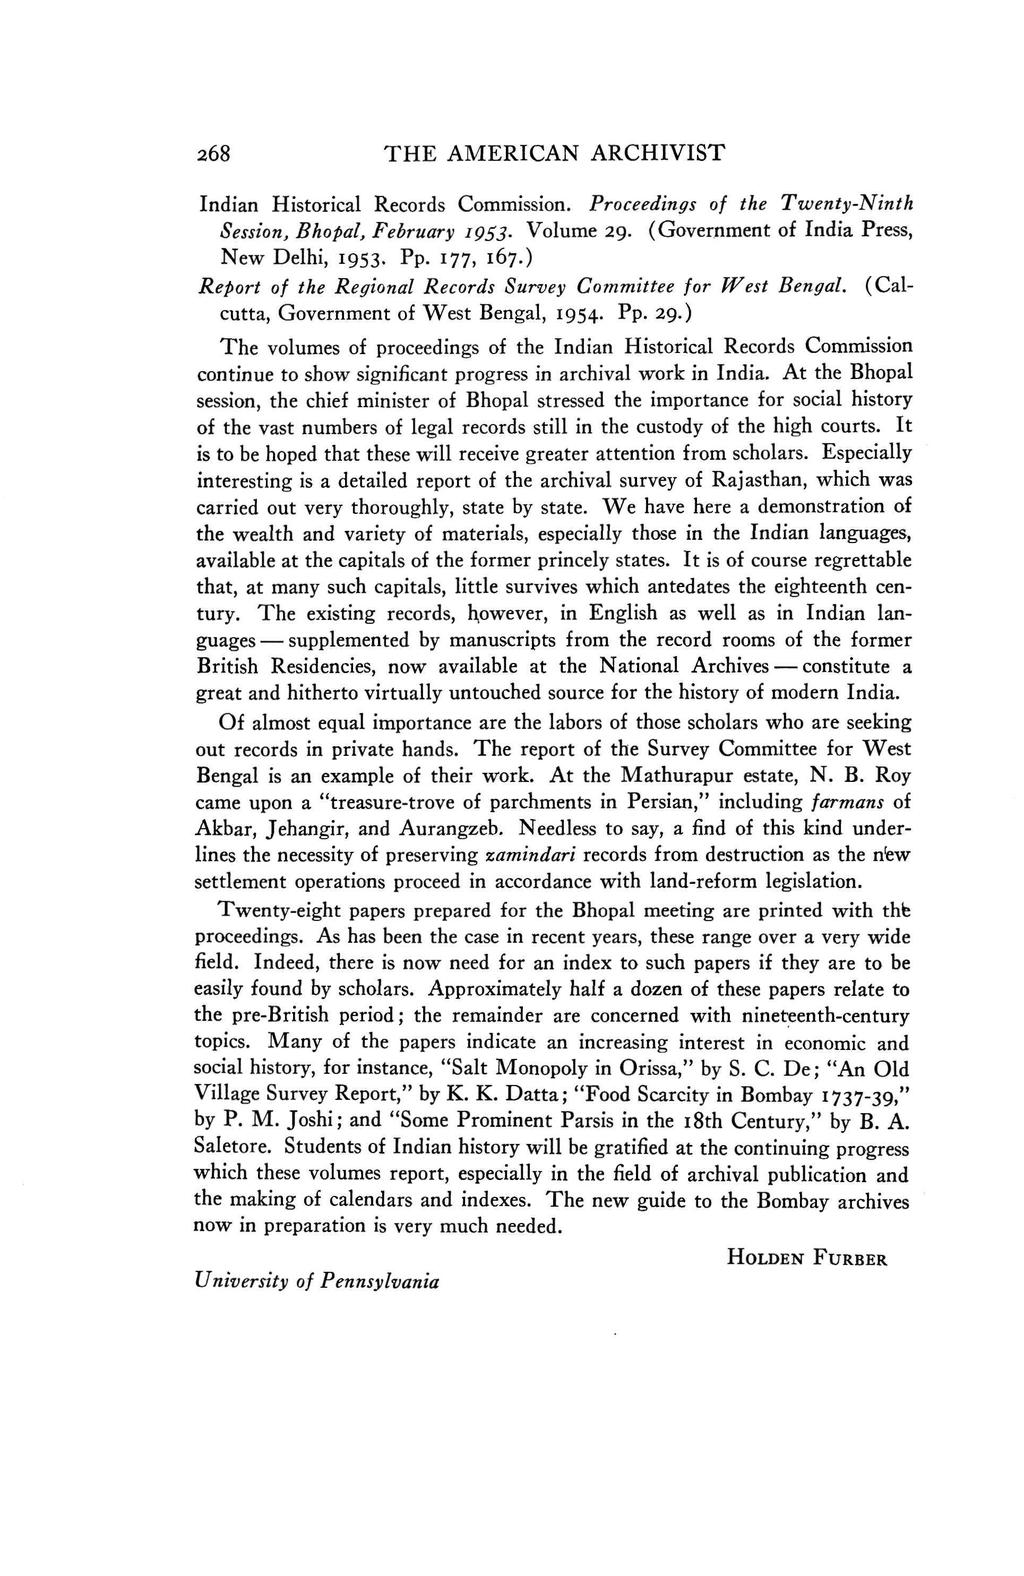 268 THE AMERICAN ARCHIVIST Indian Historical Records Commission. Proceedings of the Twenty-Ninth Session, Bhopal, February 1953. Volume 29. (Government of India Press, New Delhi, 1953. Pp. 177, 167.